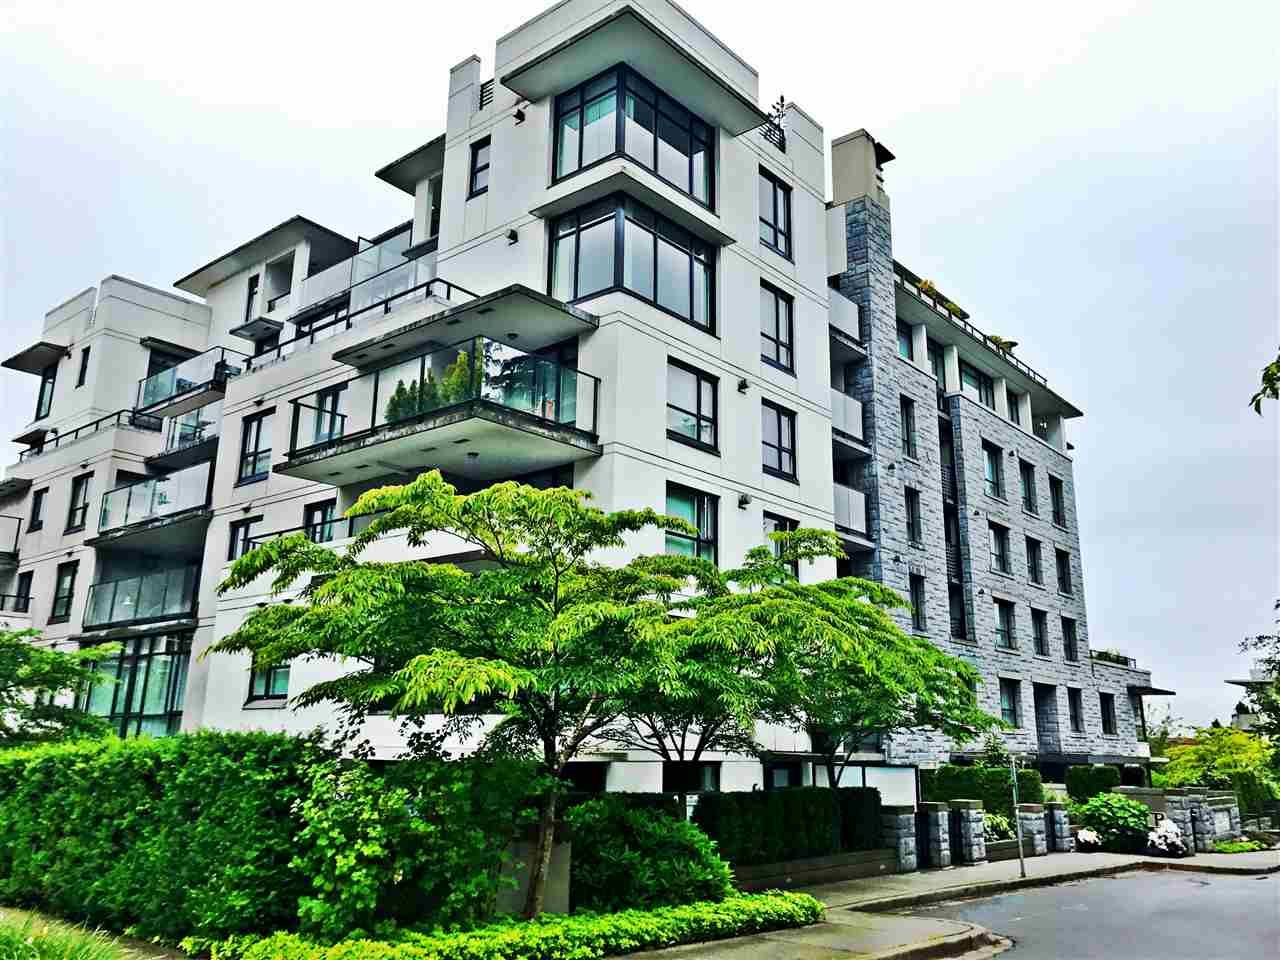 """Main Photo: 405 6018 IONA Drive in Vancouver: University VW Condo for sale in """"Argyll House West"""" (Vancouver West)  : MLS®# R2178903"""